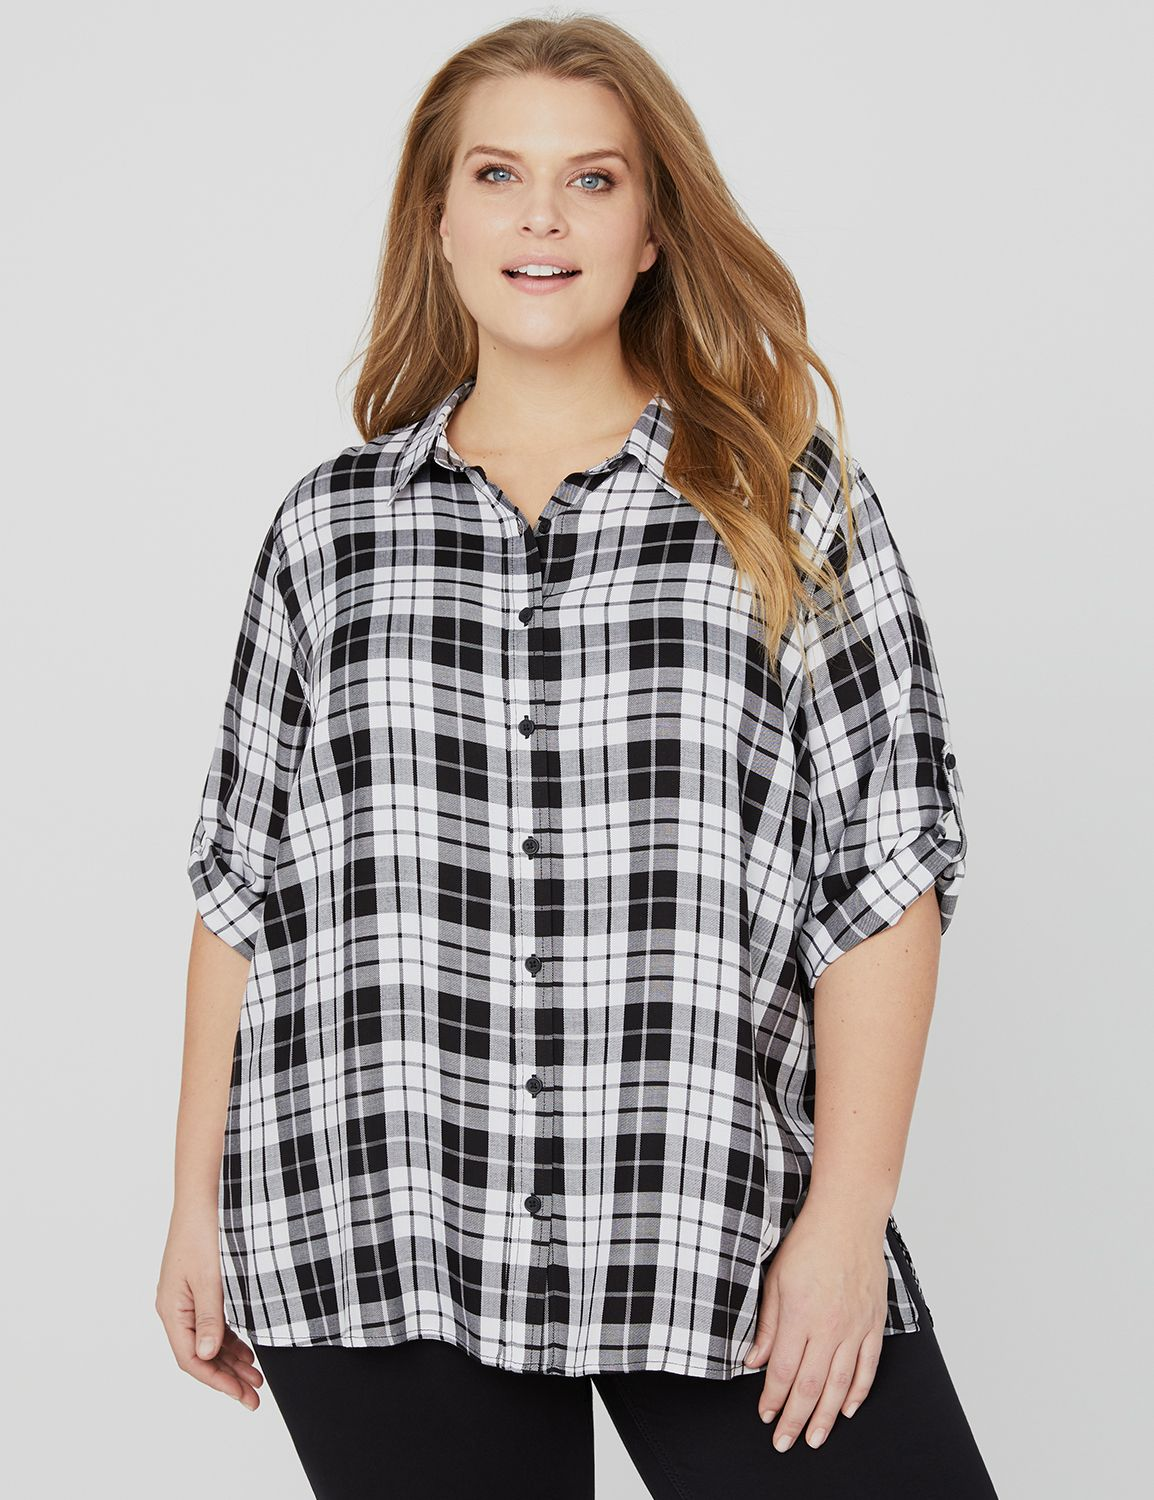 Hybrid Buttonfront Shirt 1093256 3/4 SLV PLAID BACK SHIRT MP-300101851